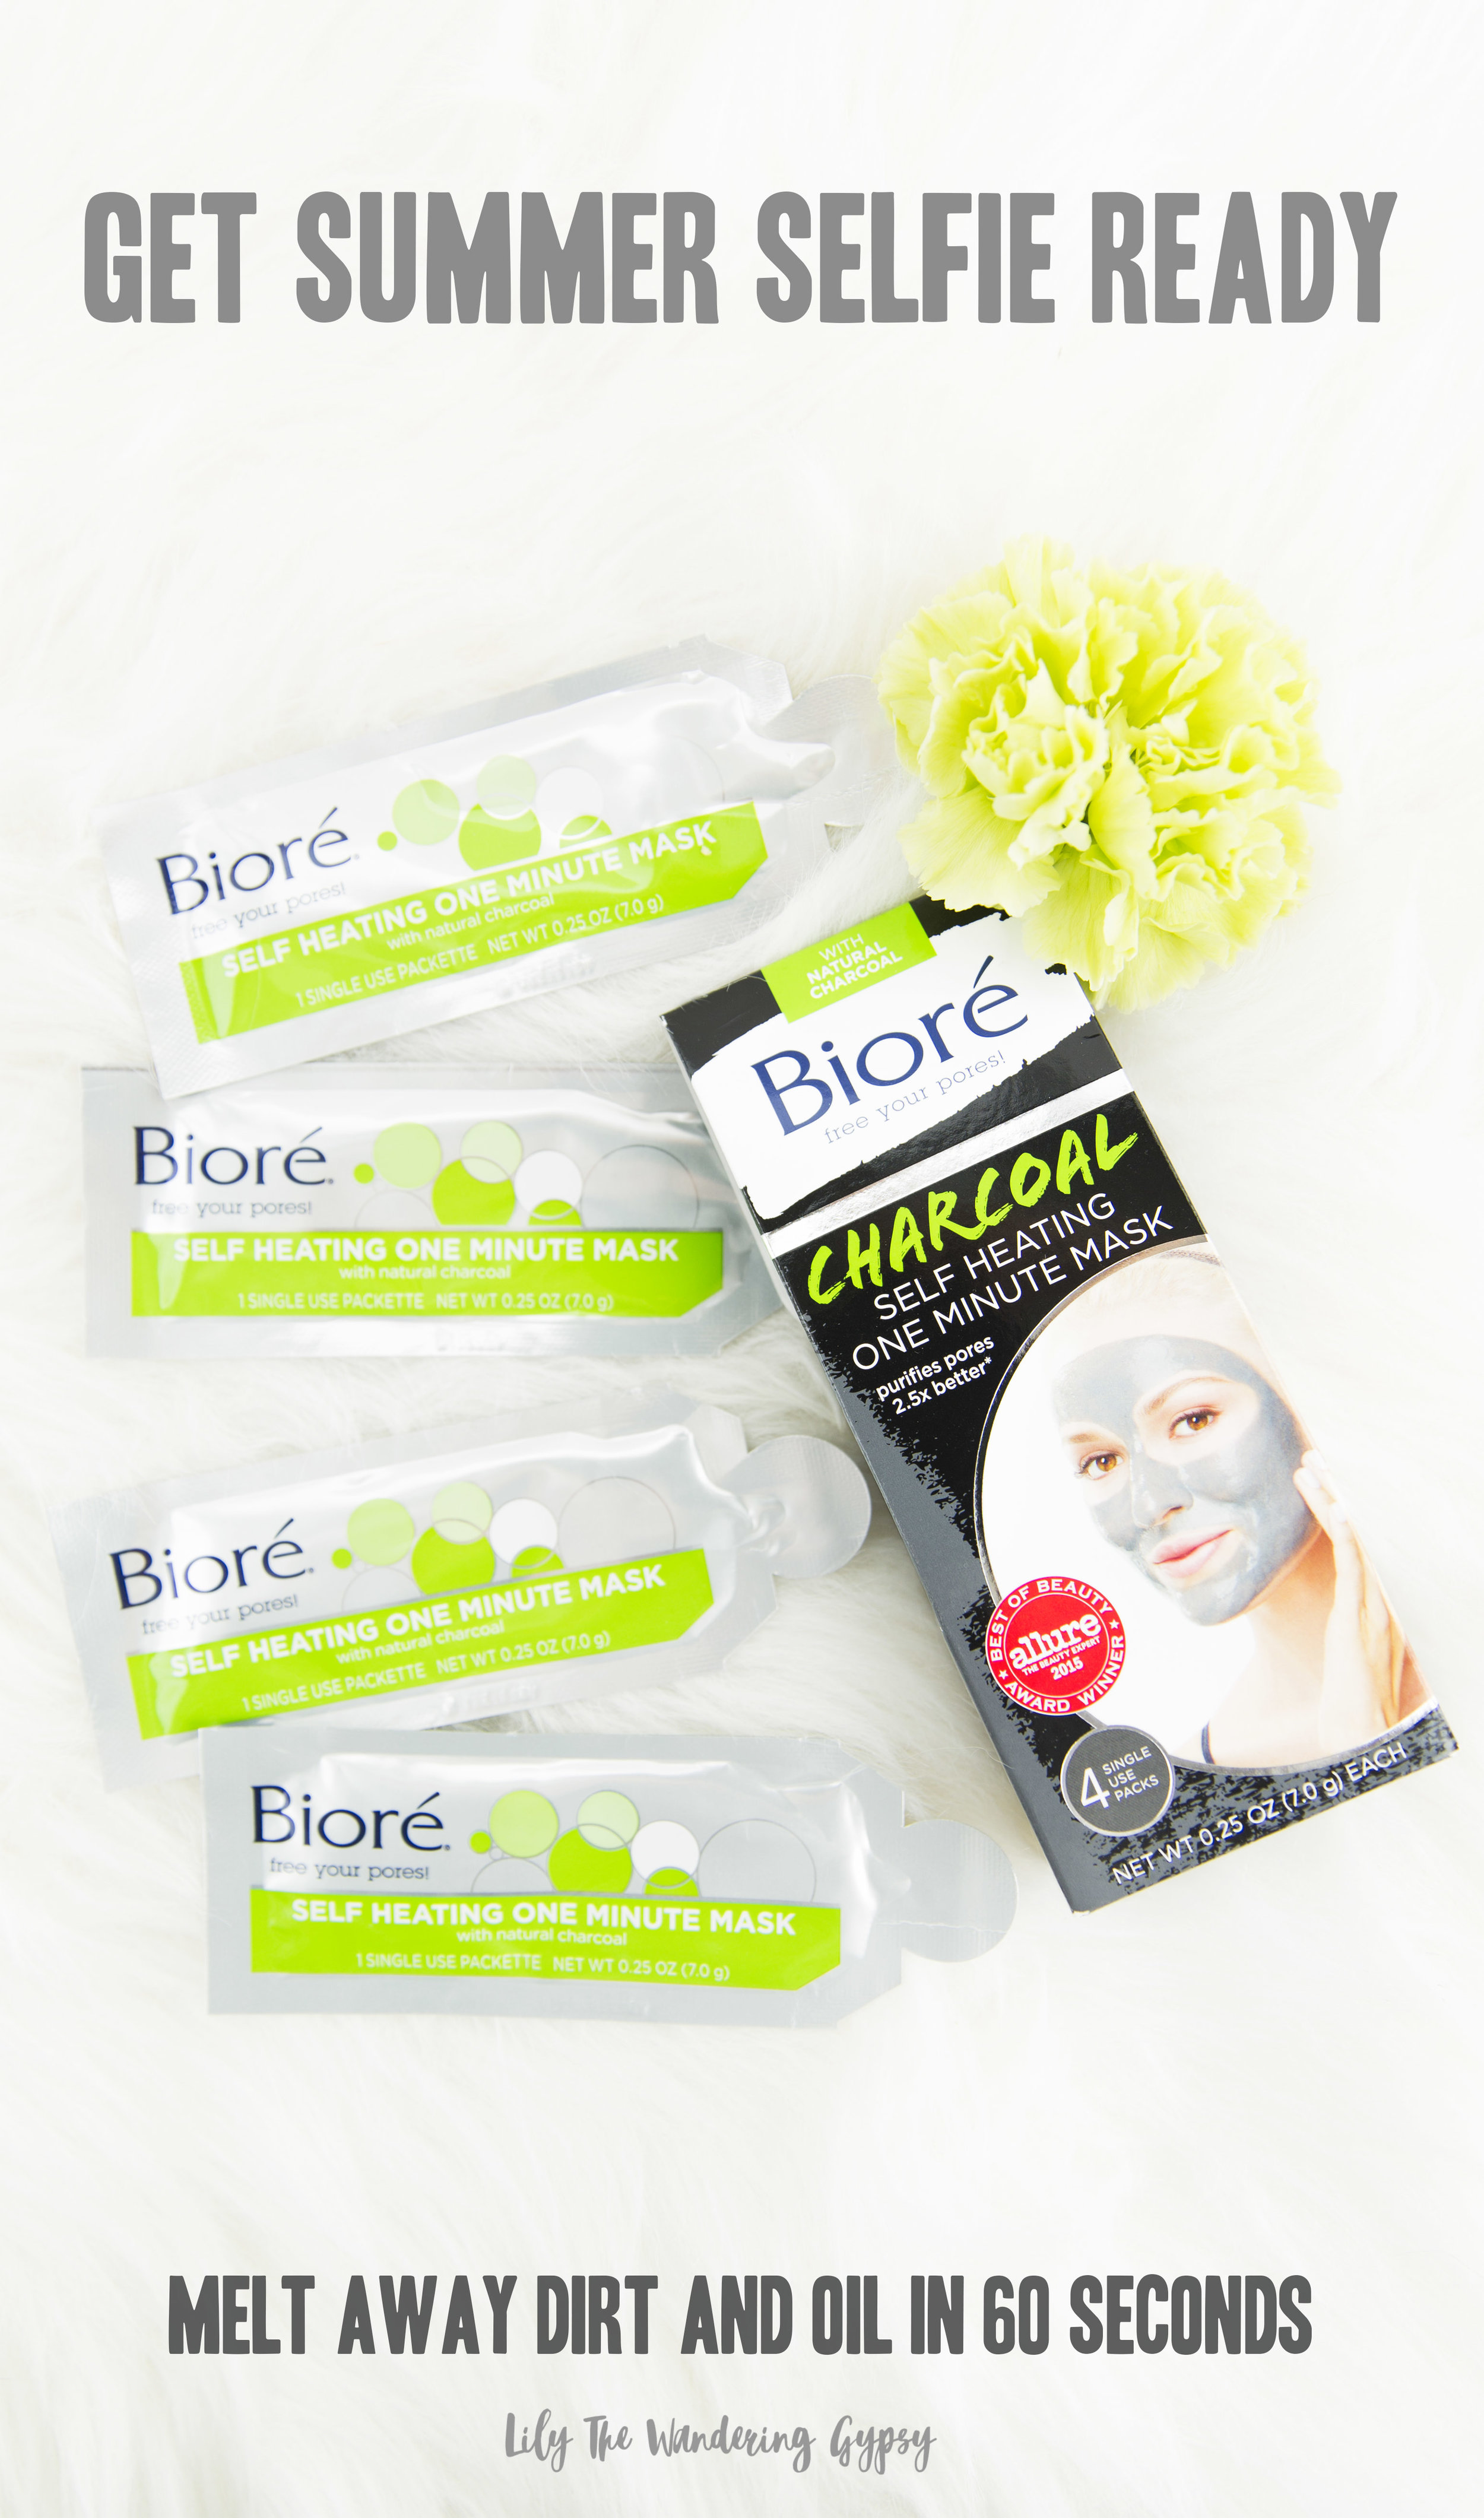 The Bioré One Minute Self Heating Mask